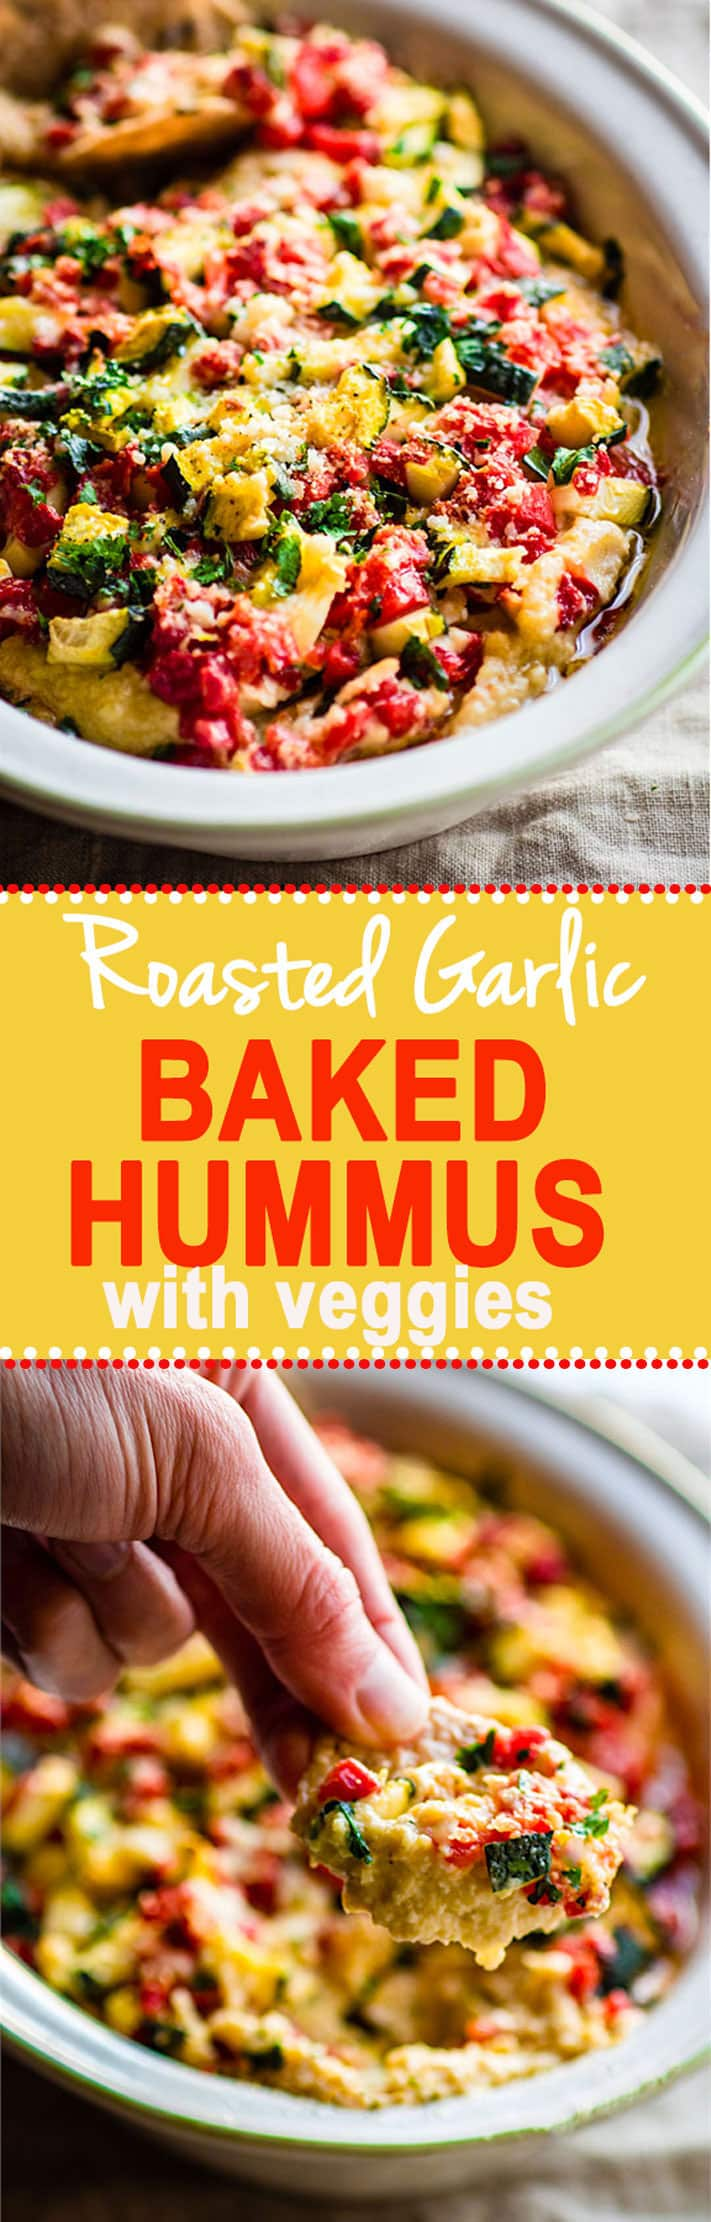 Easy Parmesan and Roasted Garlic Baked Hummus Dip with Zucchini and Pimentos! A super simple gluten free baked hummus dip recipe that feeds a crowd! So delicious, healthy, veggie packed, and makes for a great snack or appetizer. @COTTERCRUNCH